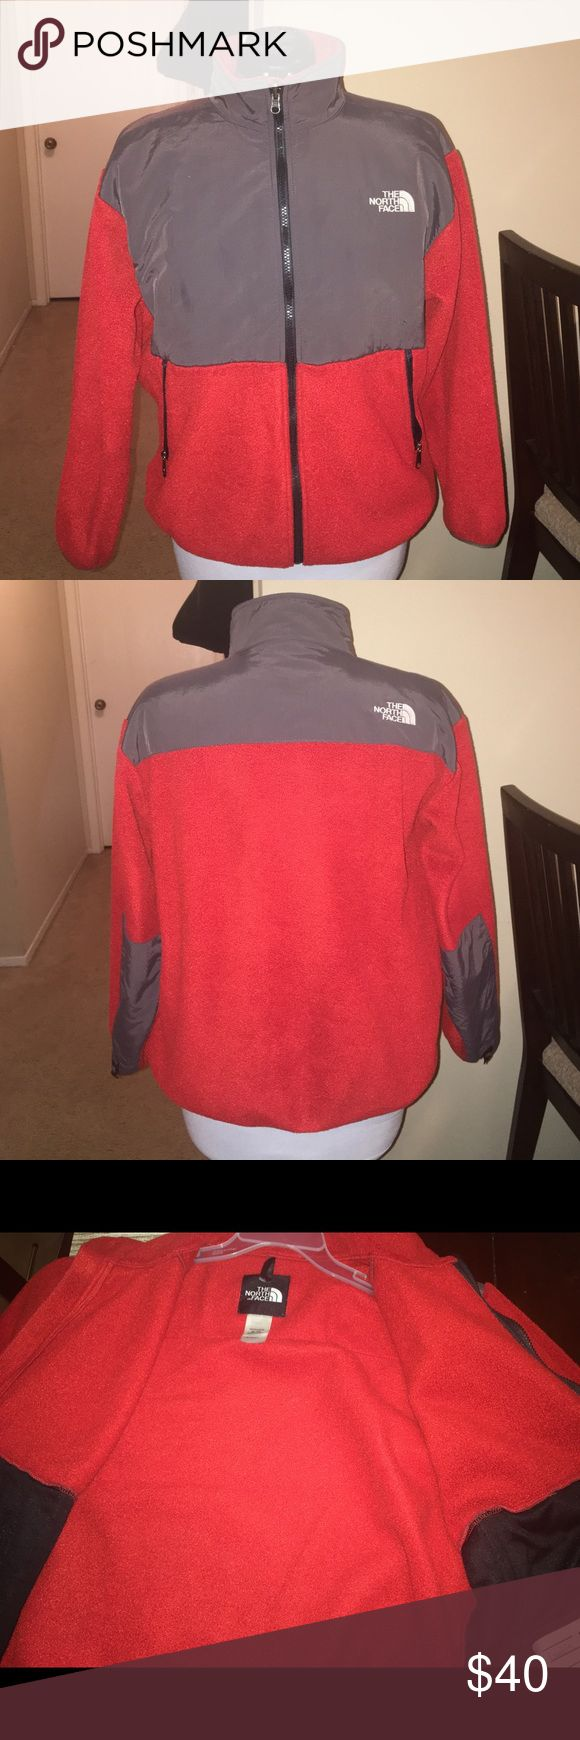 Boys North Face Jacket, Size XL Boys Blood Orange Red North Face Jacket, Size XL, no holes, rips, or tears. Could also be equivalent to a Women's M or Girls XL. The North Face Jackets & Coats